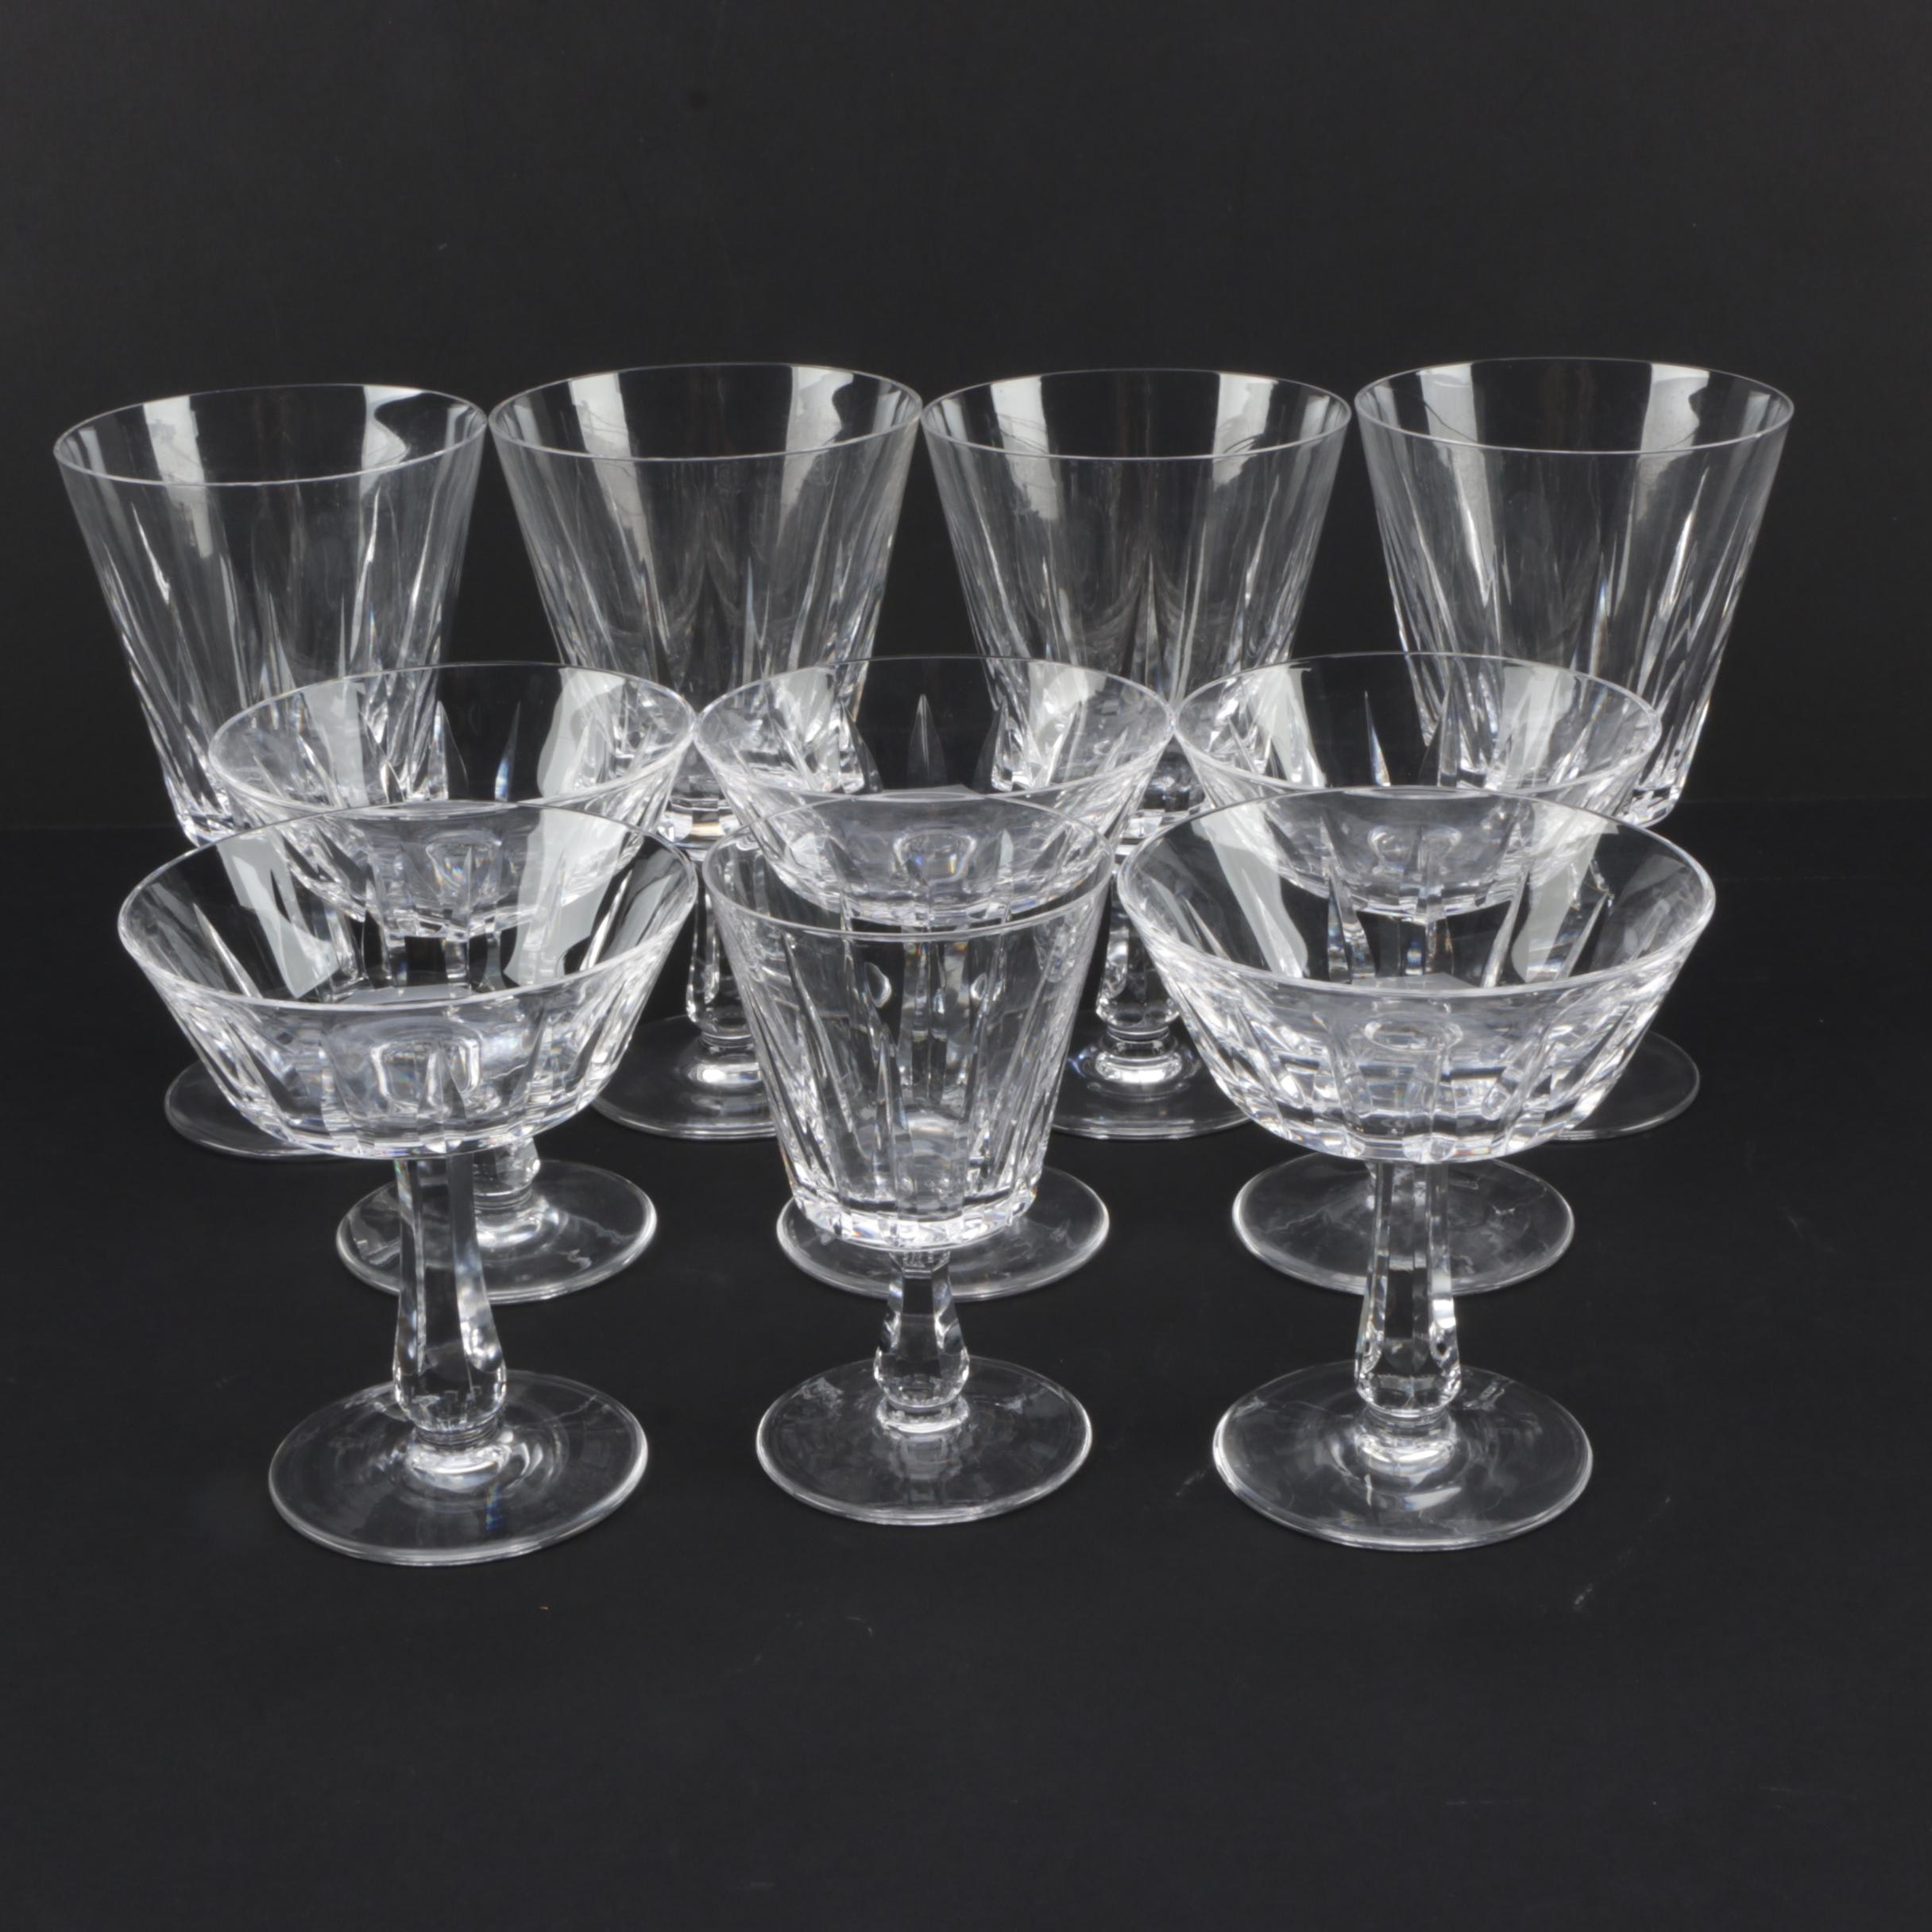 Collection of Crystal Stemware